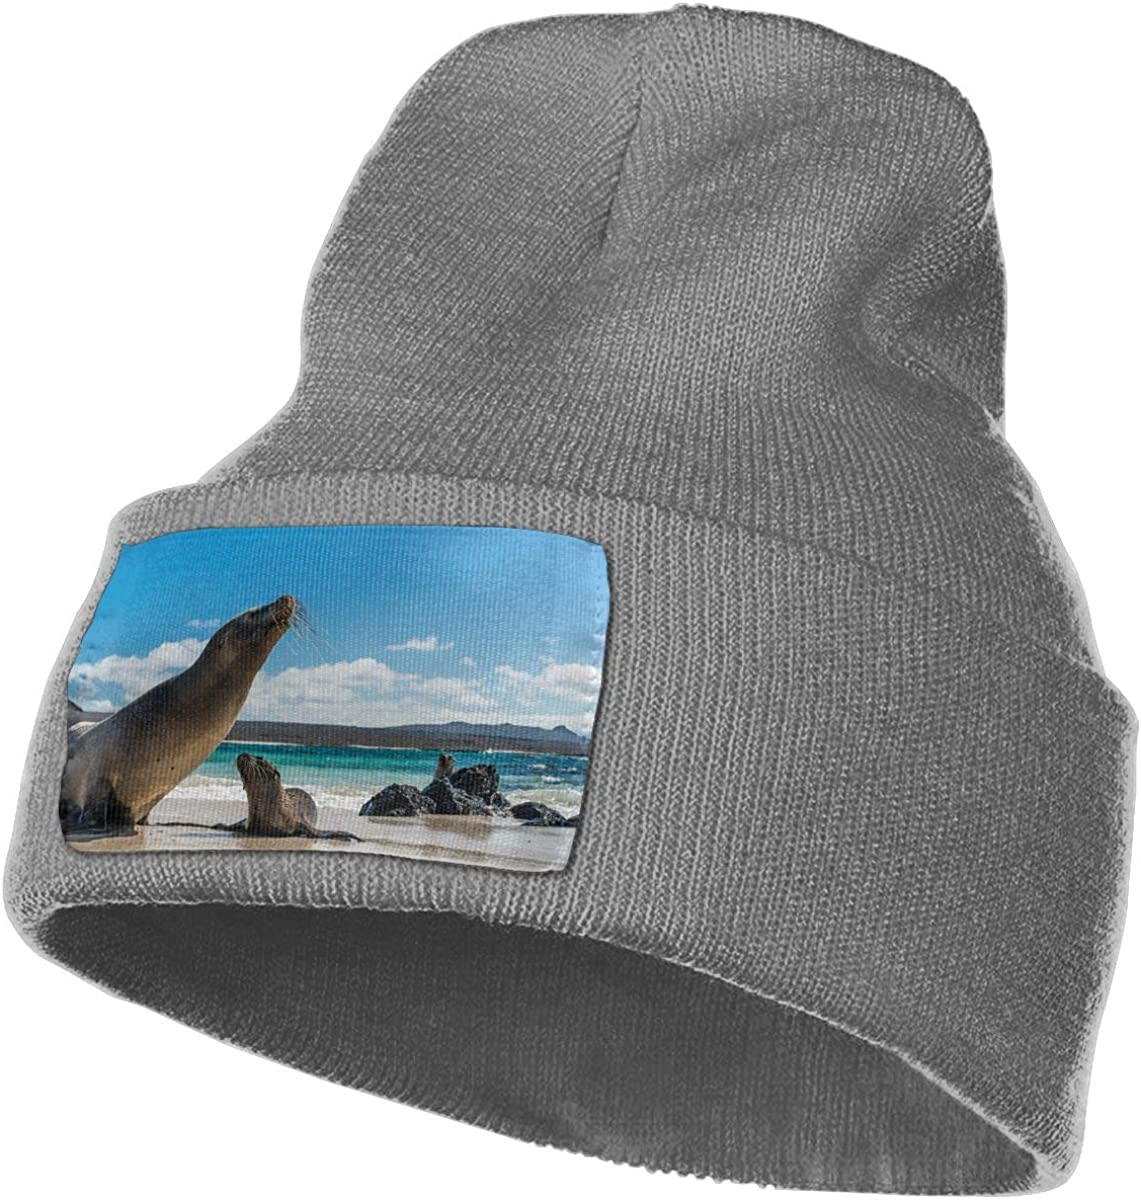 TAOMAP89 Sea Lion Women and Men Skull Caps Winter Warm Stretchy Knit Beanie Hats